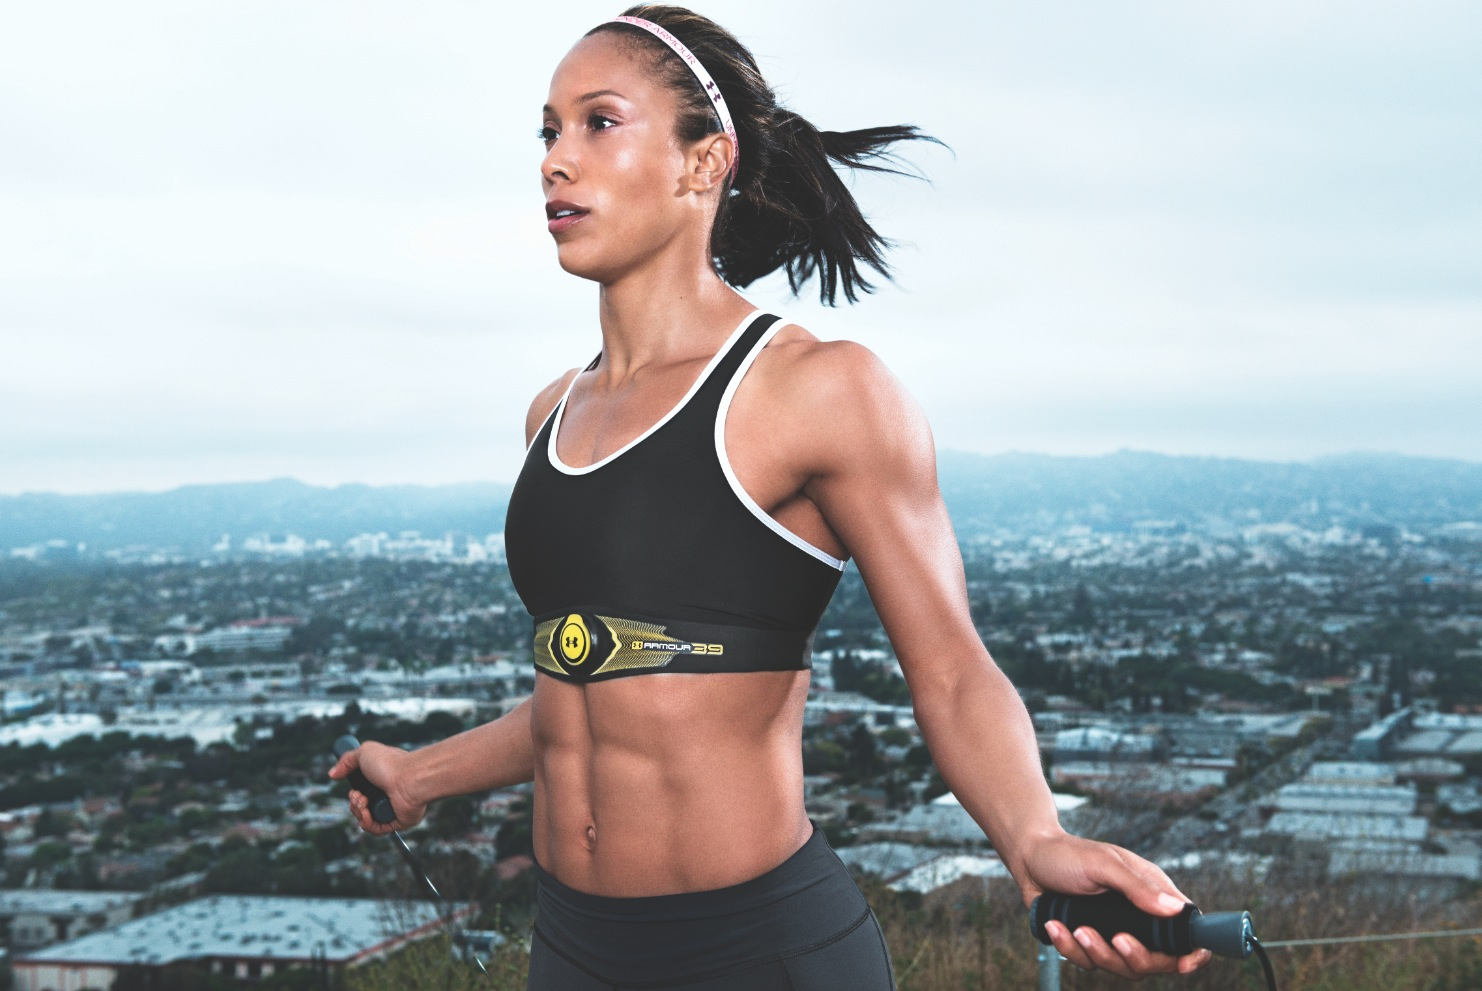 c565053e3 We looked at Under Armour's testing results and women perceived the brand  to be meat-headed and testosterone-driven and purely performance-driven.